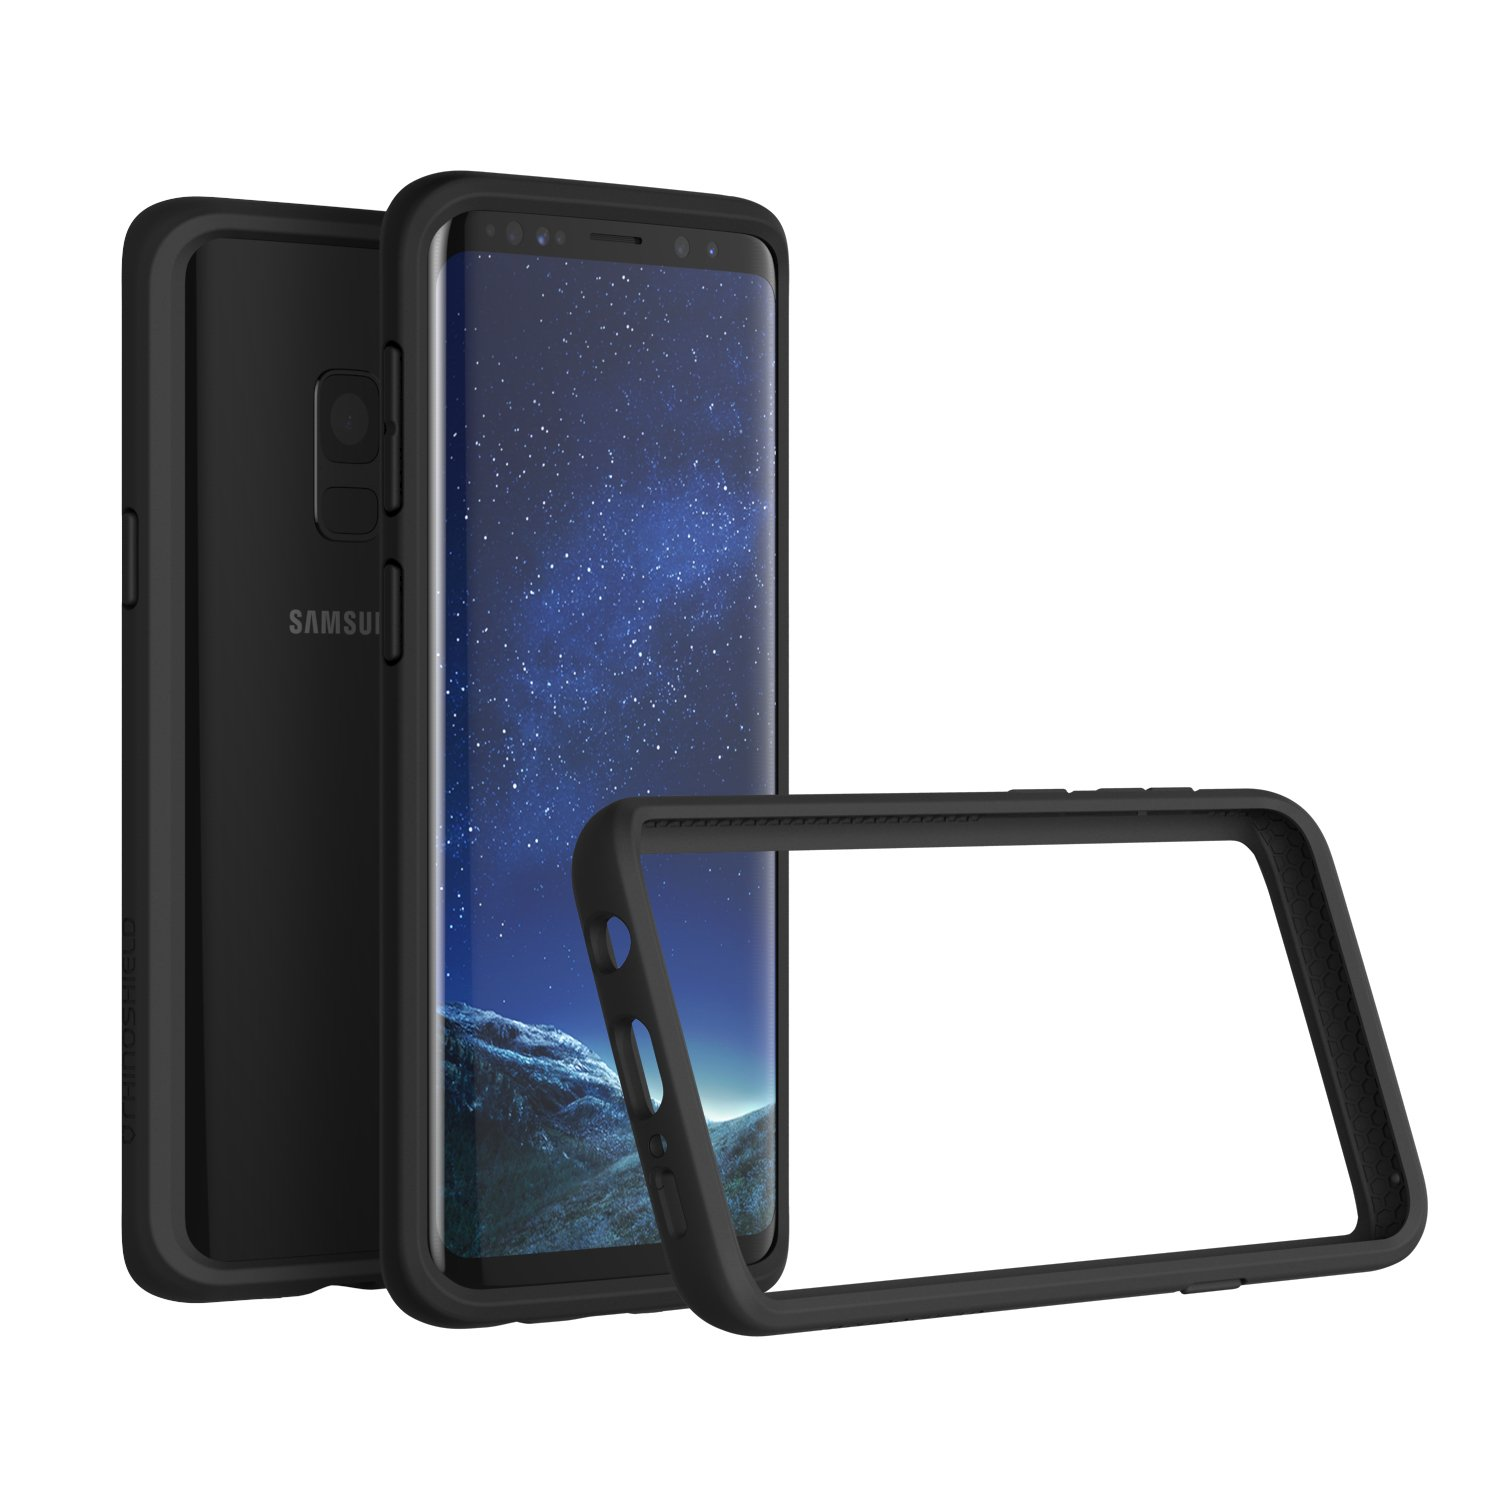 RhinoShield Bumper Case for Galaxy S9 [NOT Plus] | [CrashGuard] | Shock Absorbent Slim Design Protective Cover - Compatible w/Wireless Charging [3.5M / 11ft Drop Protection] - Black by RhinoShield